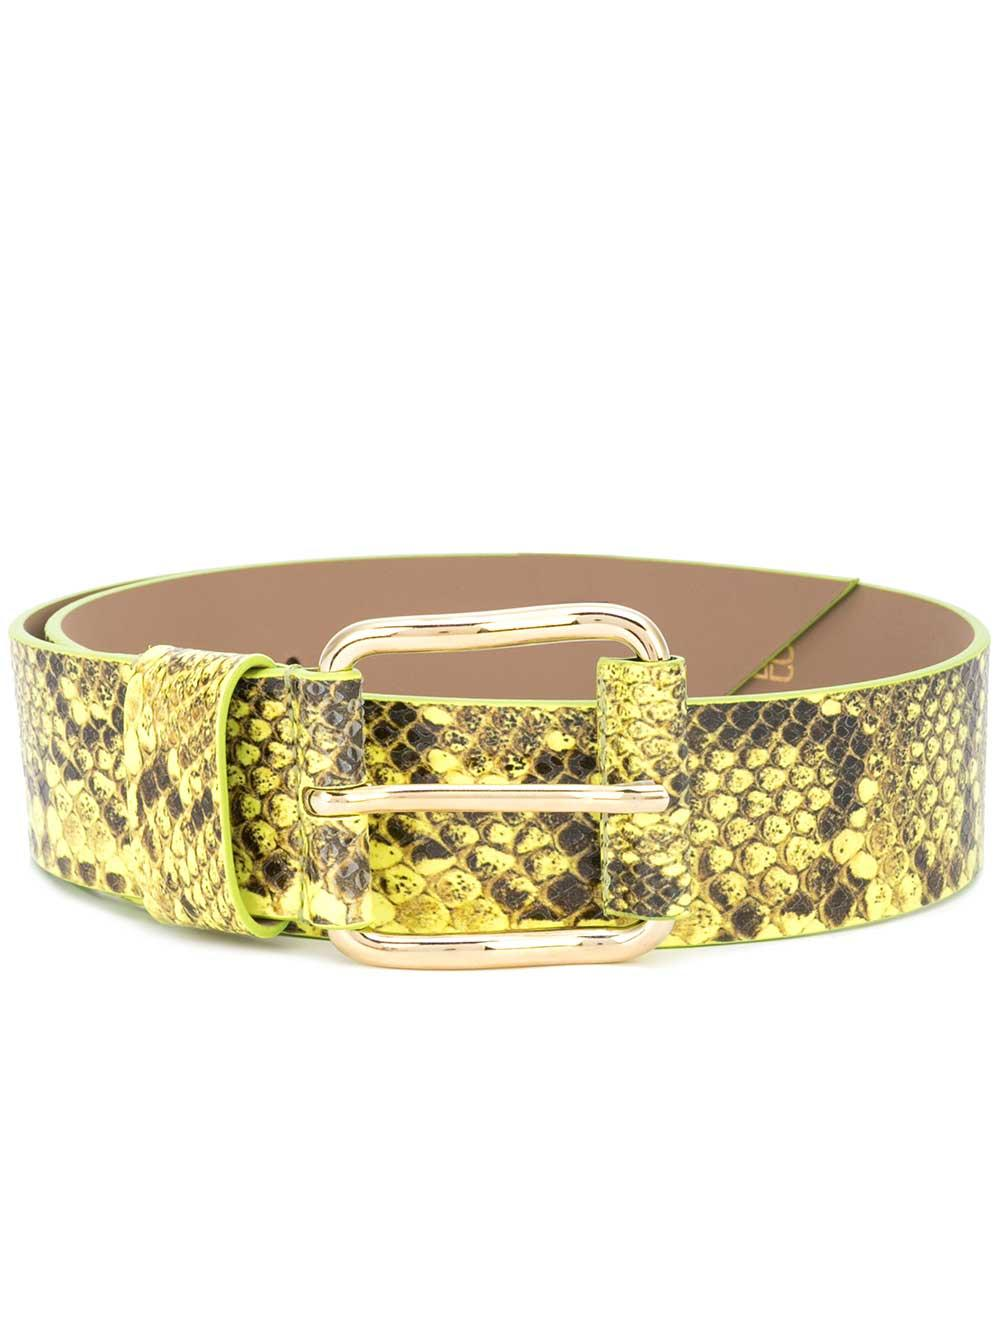 Ivy Wide Hendrix Waist Belt